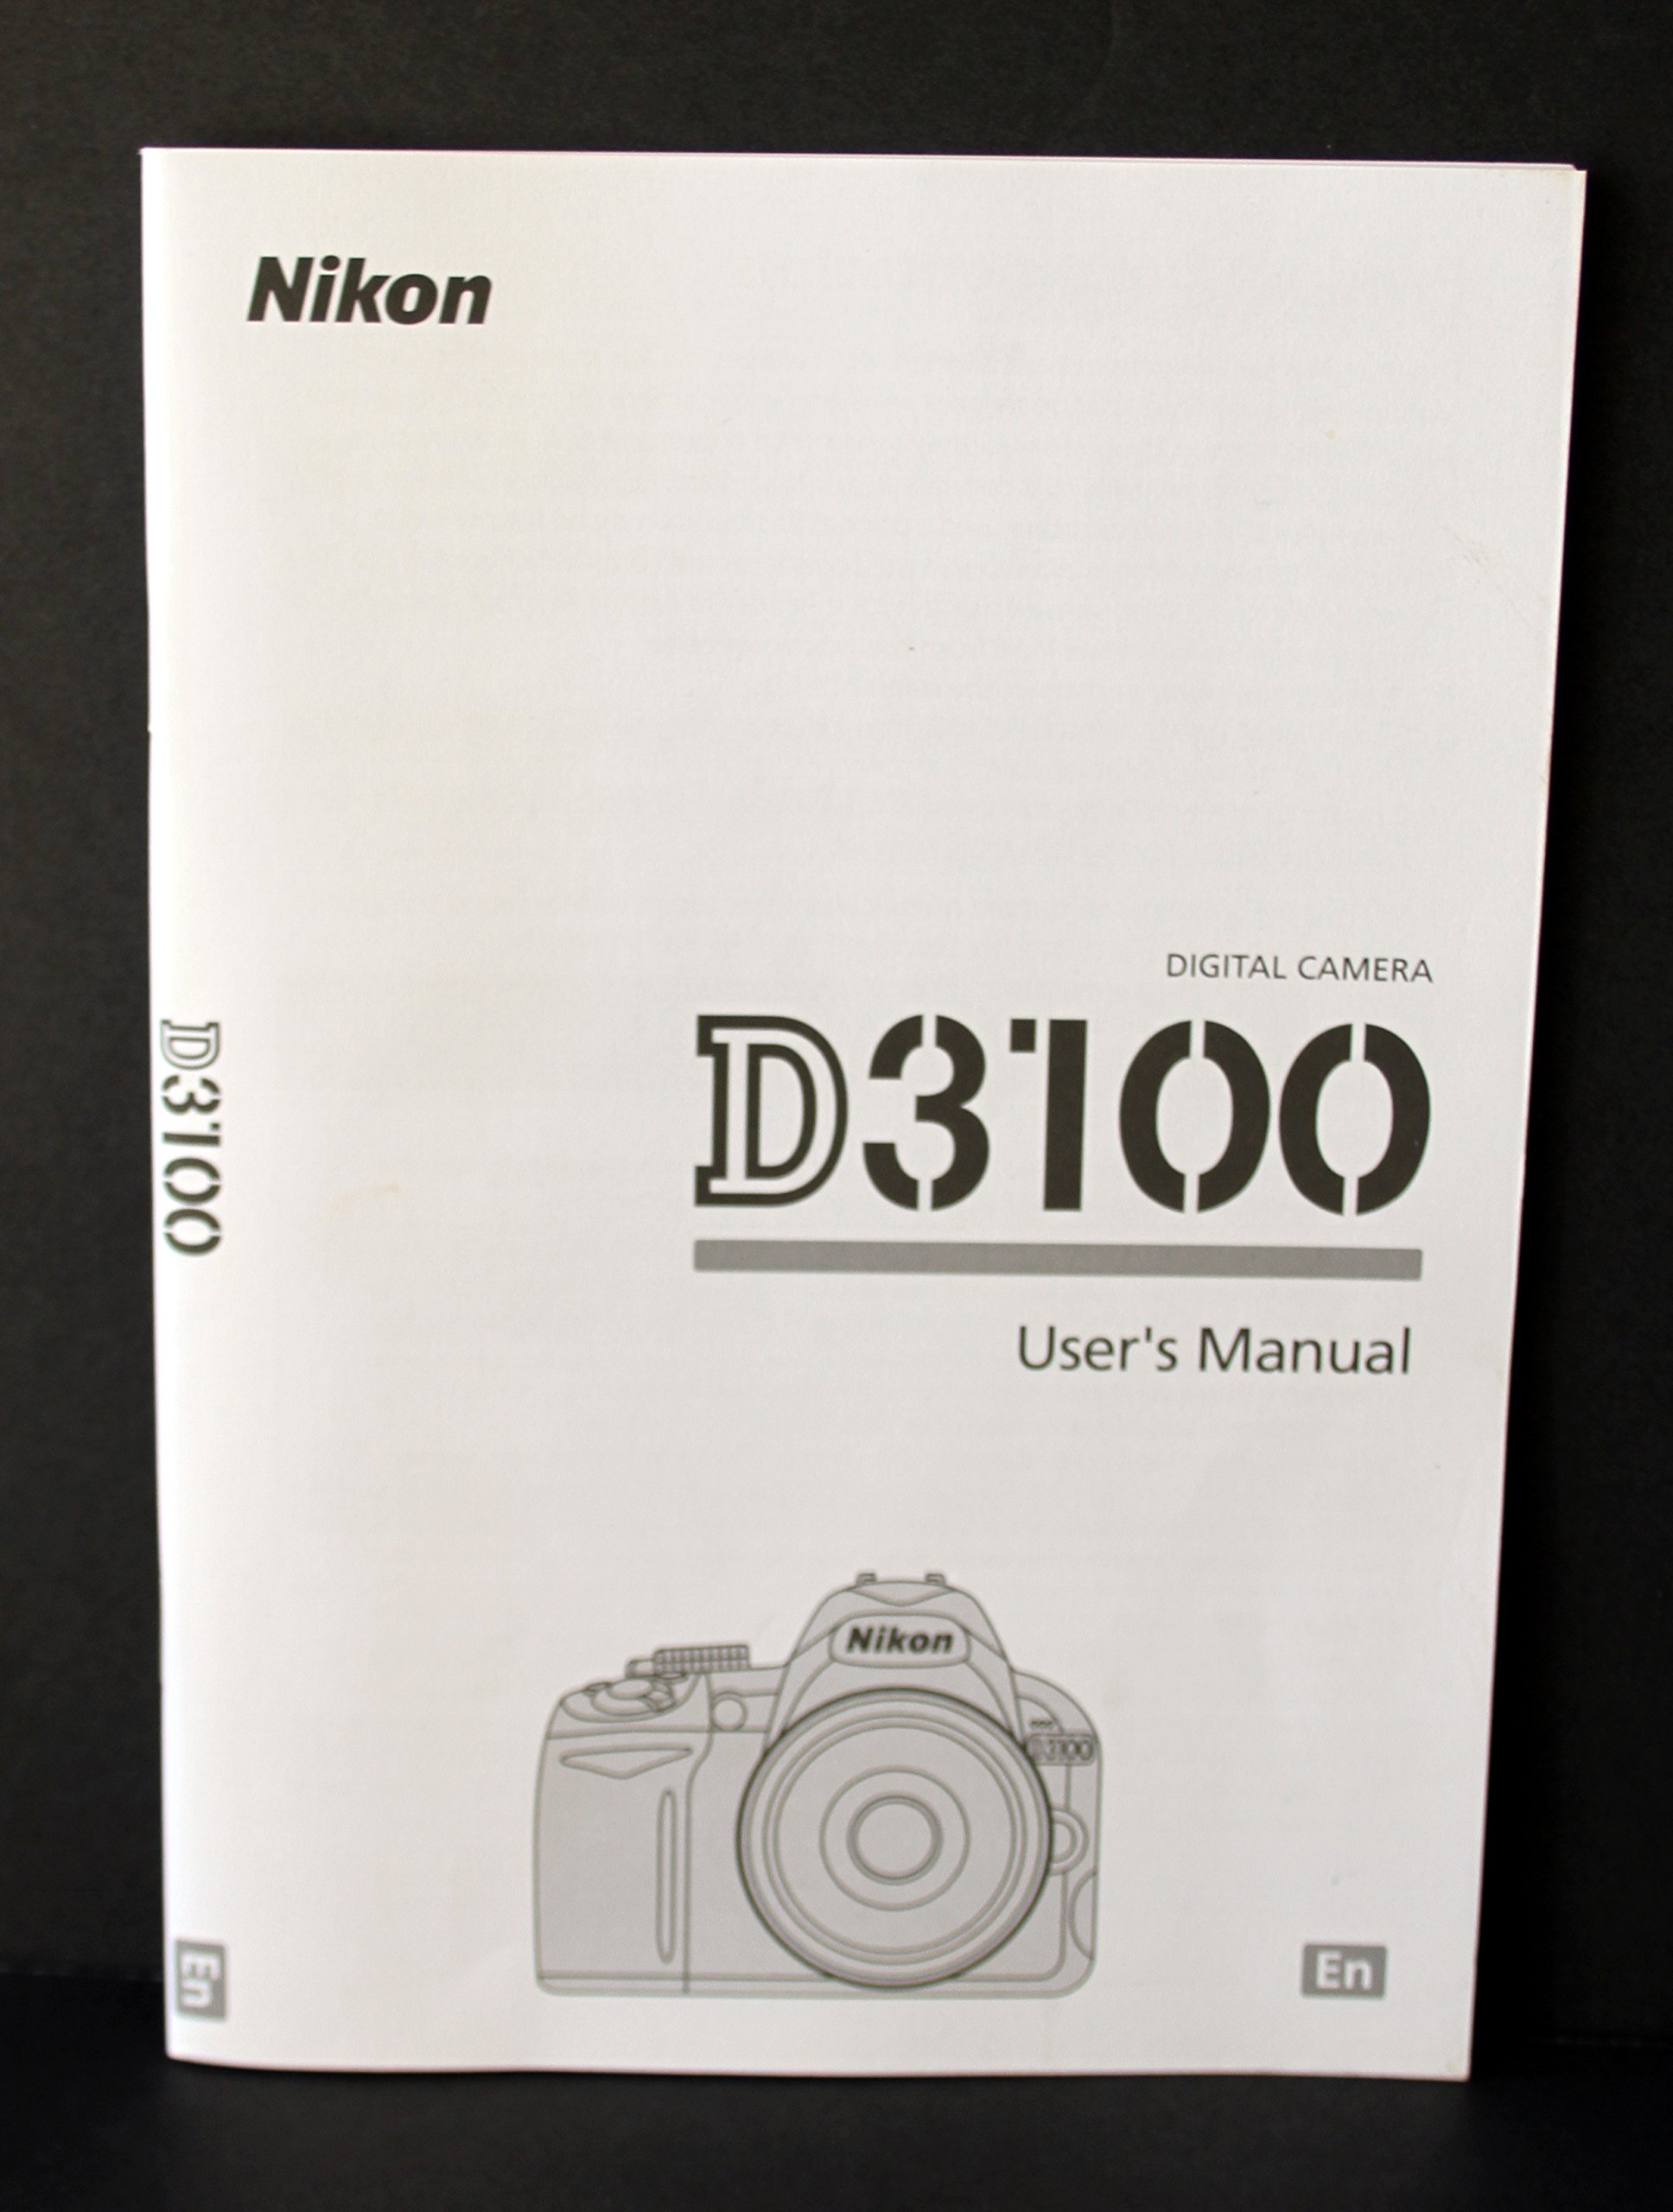 nikon d3100 user s manual nikon amazon com books rh amazon com d3300 user manual nikon d3100 user manual free download